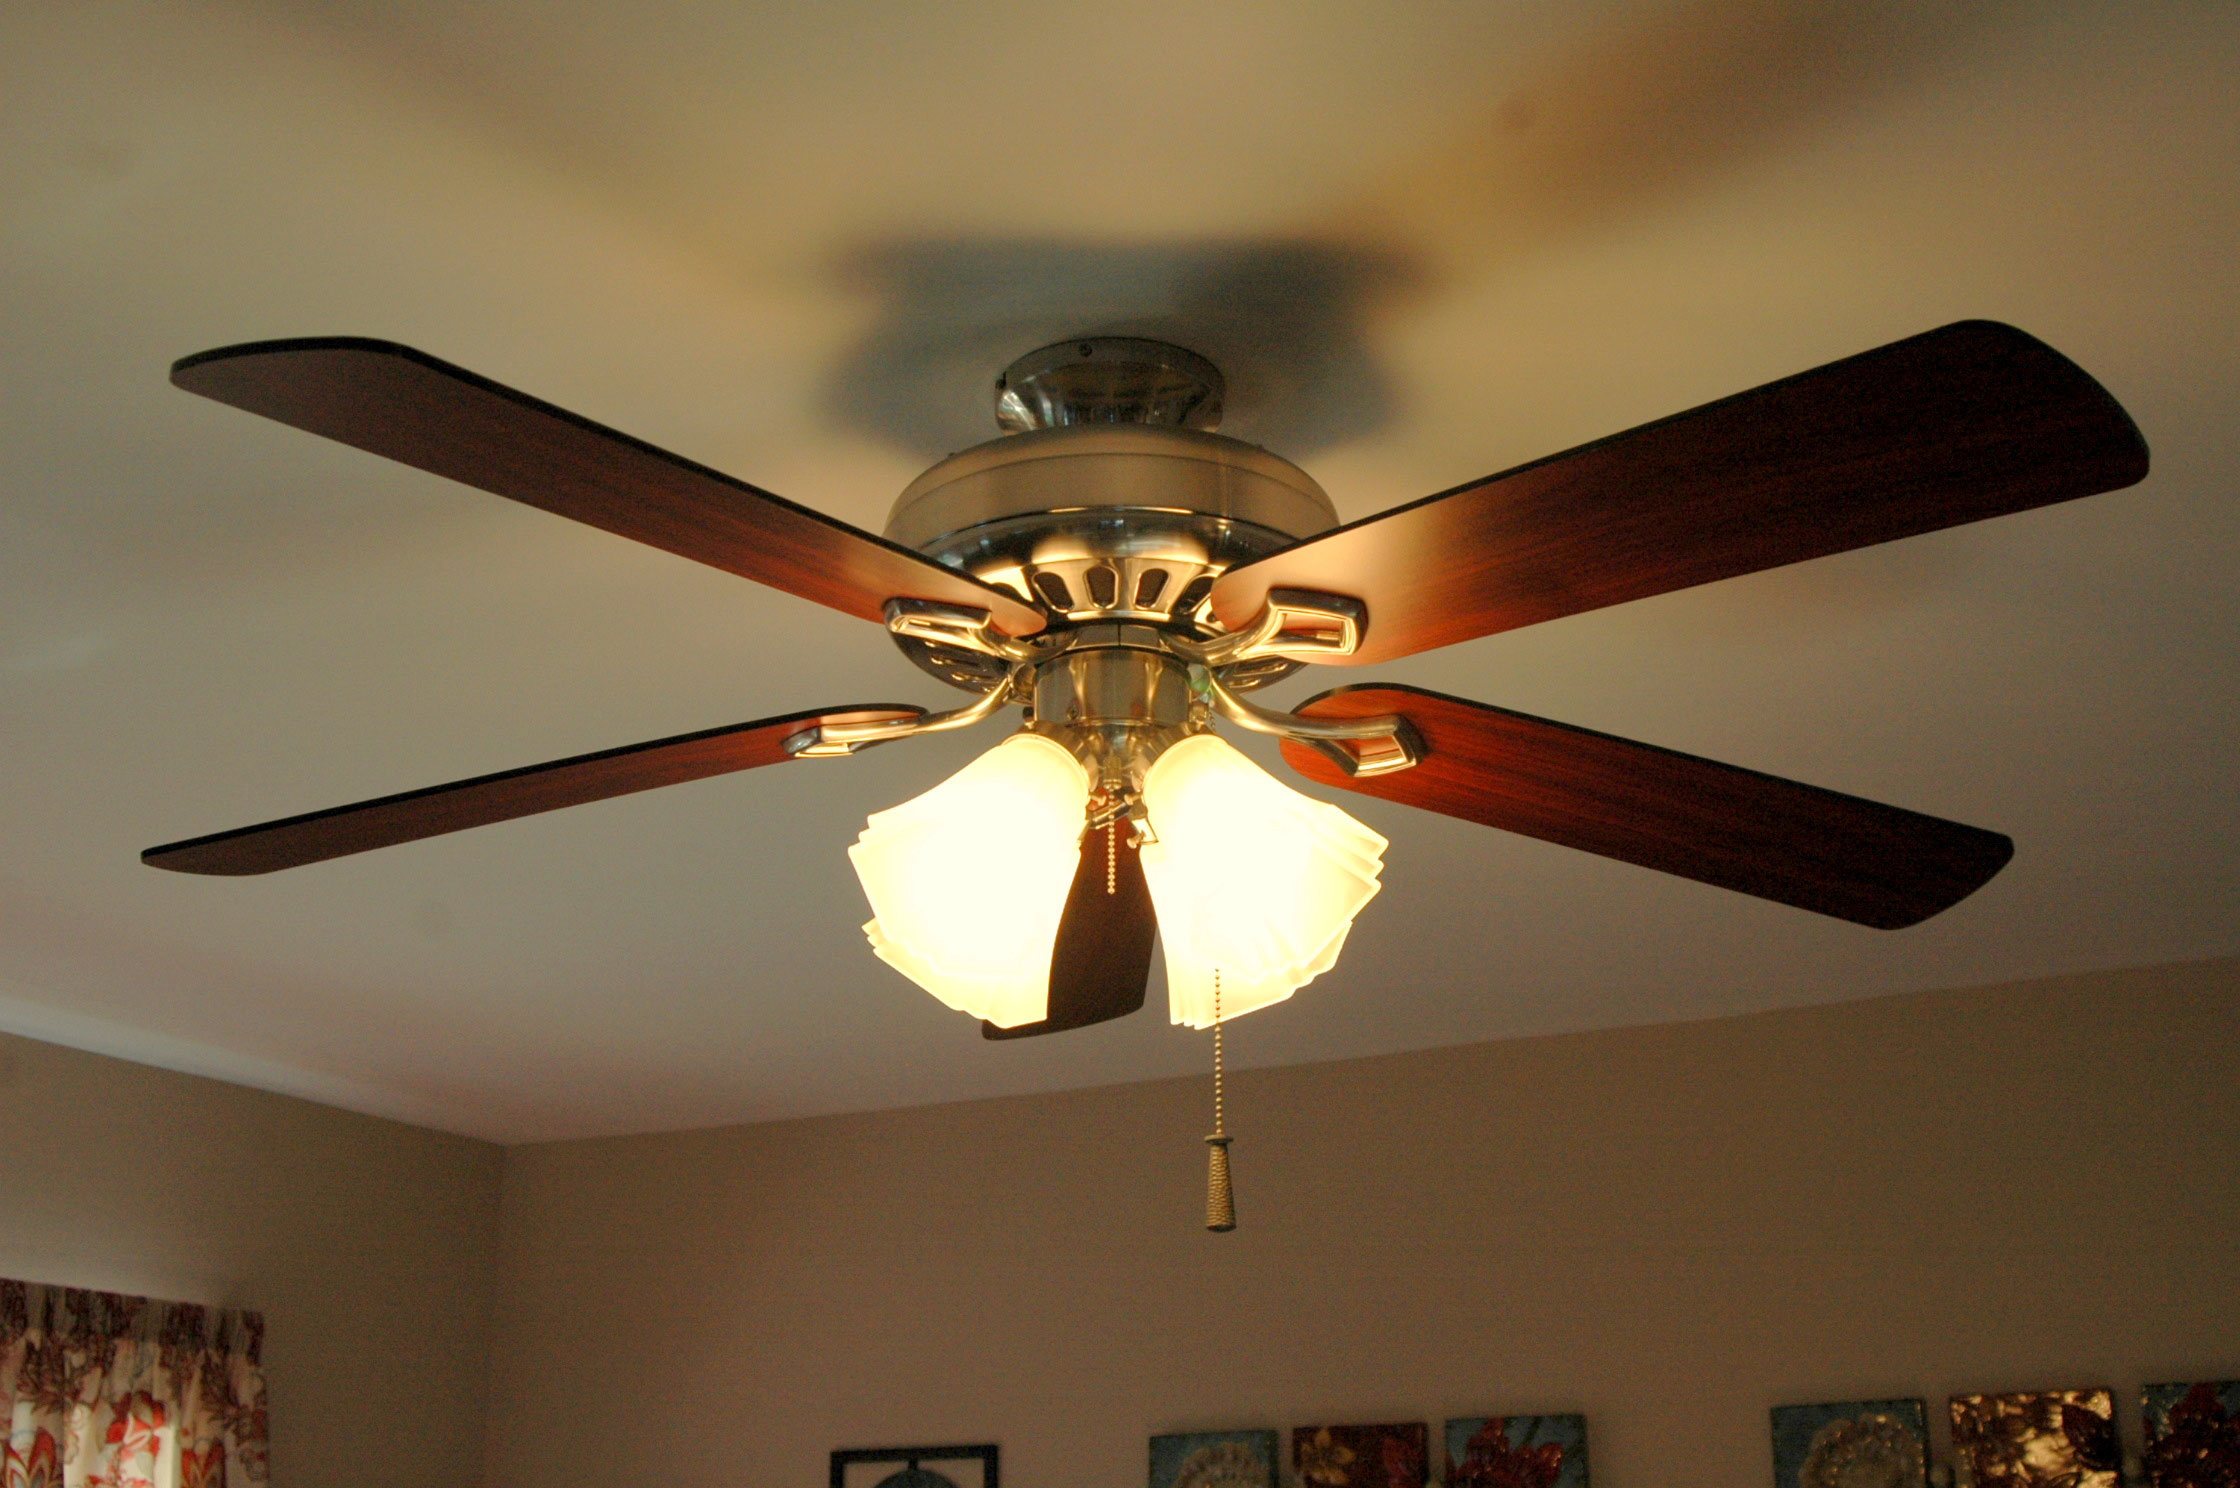 Ceiling Fans Installation (View 3 of 10)